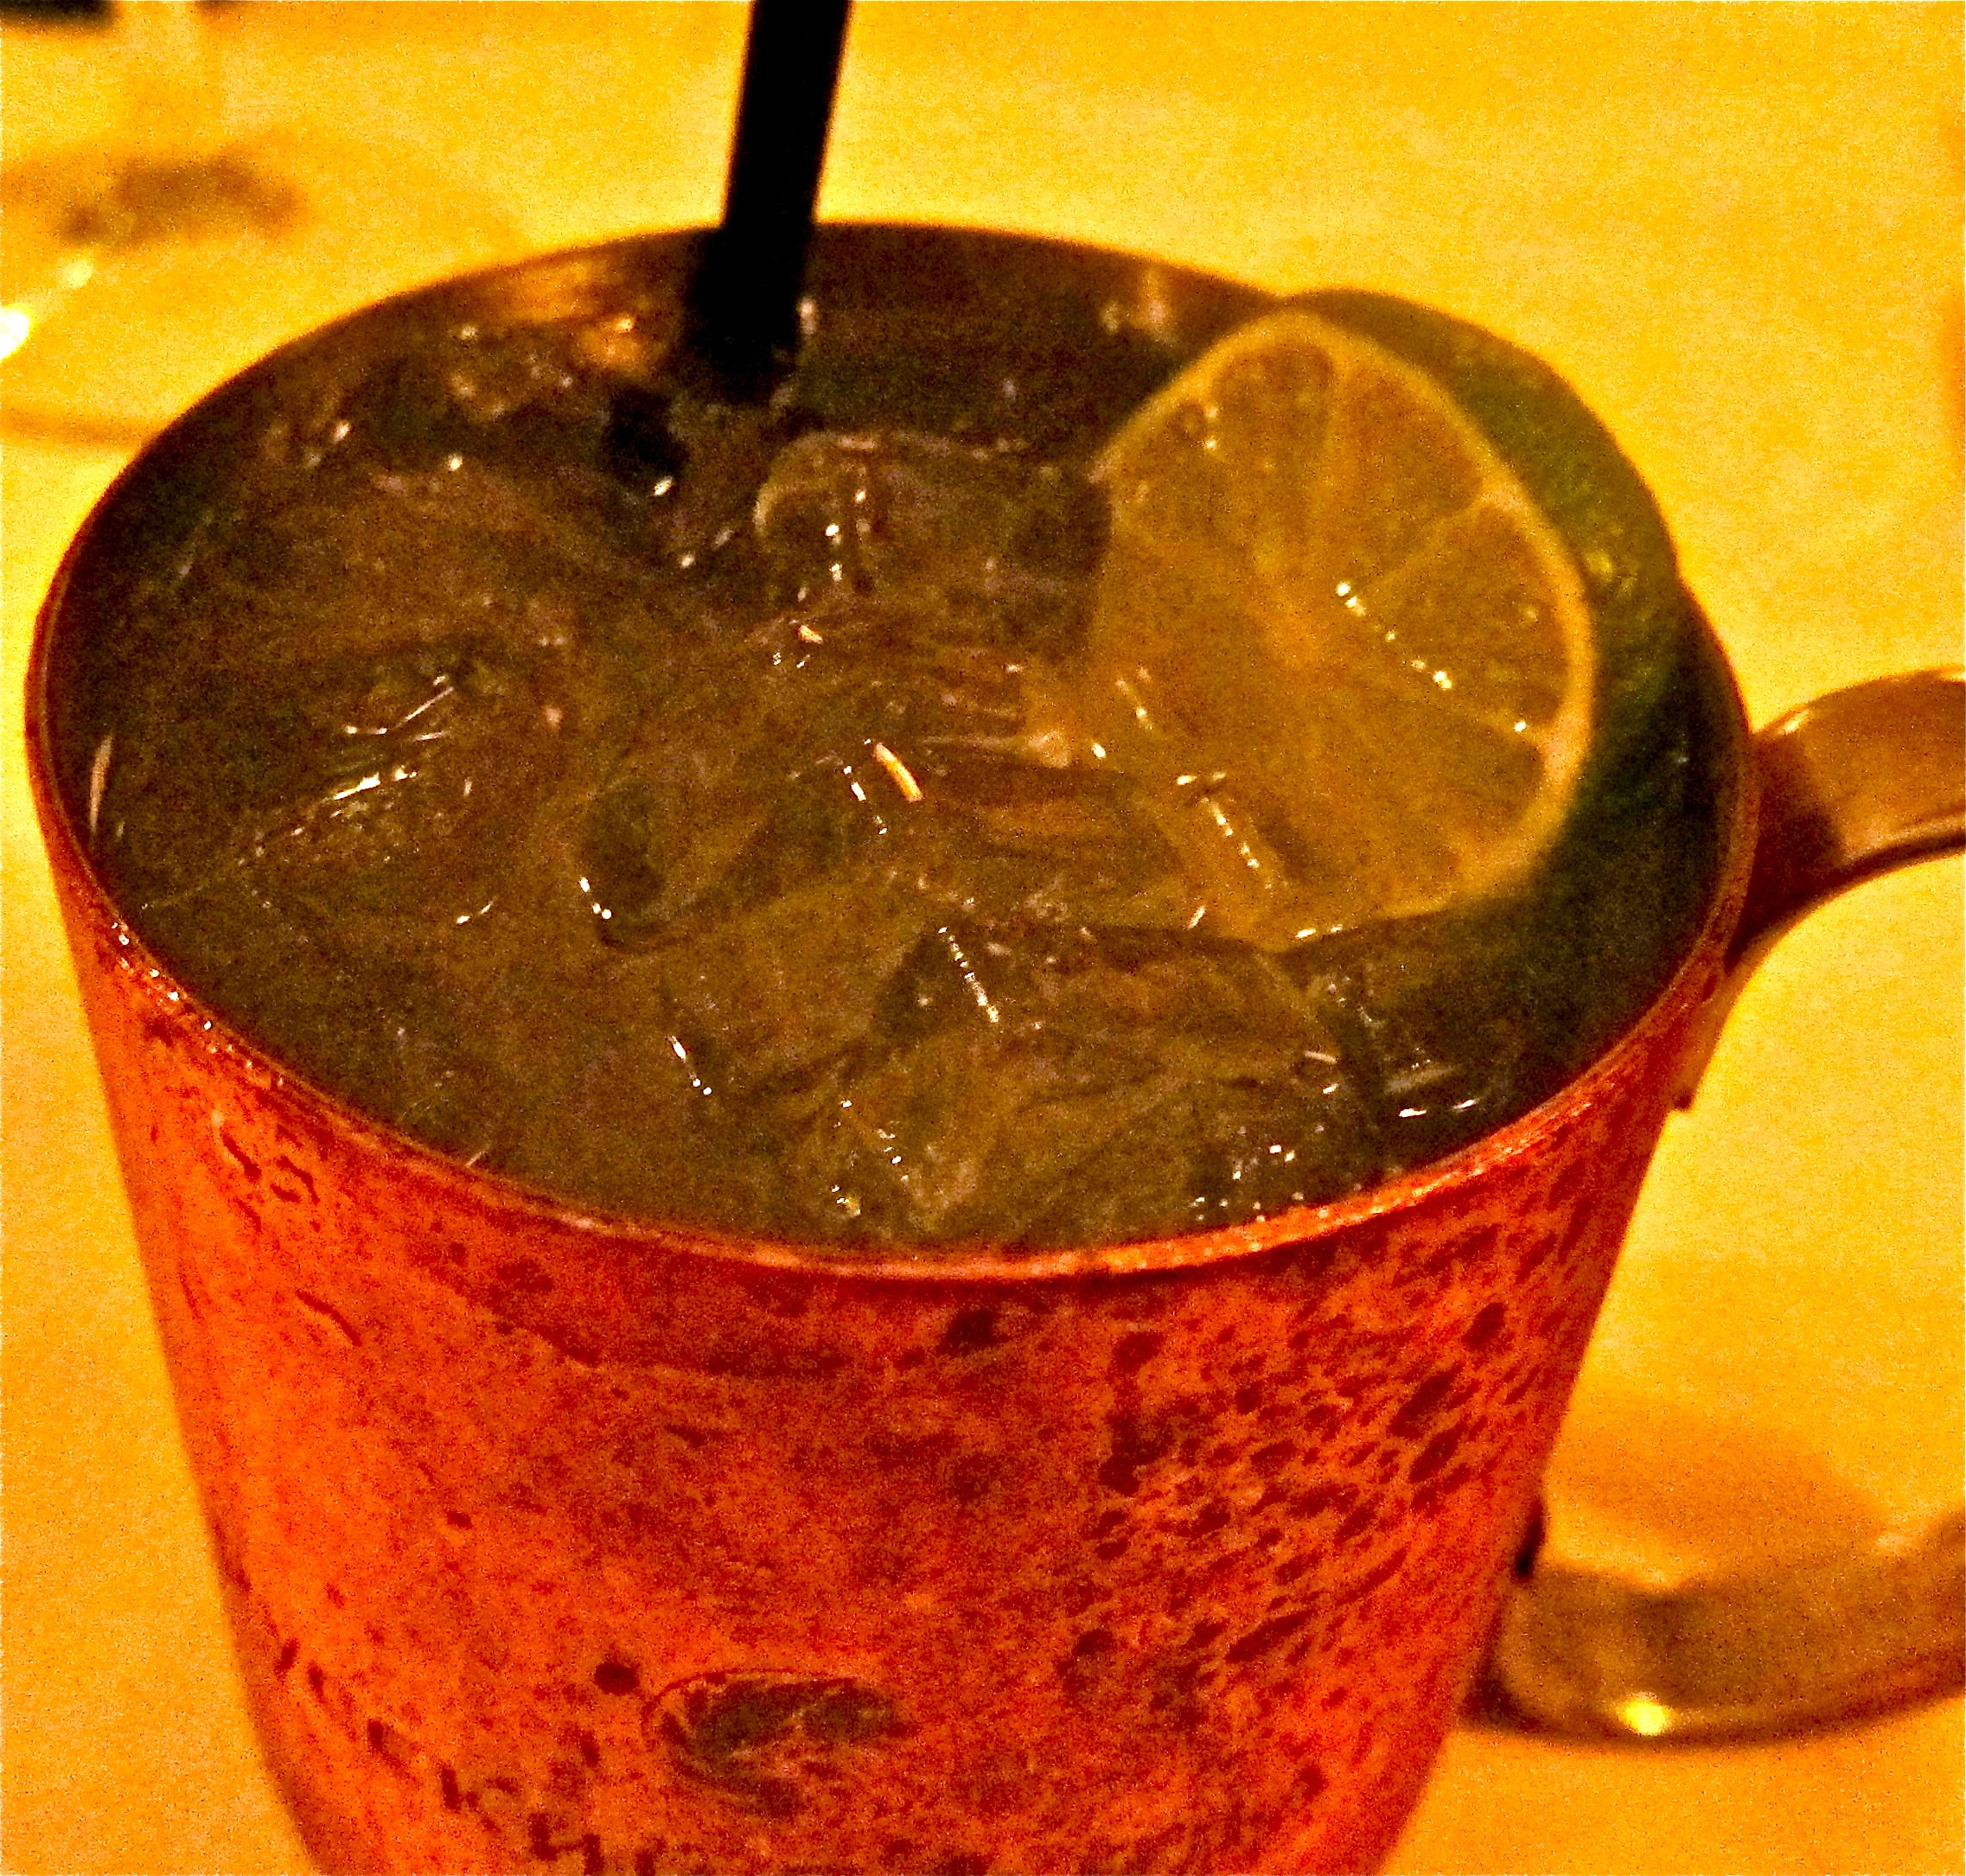 their versionof Moscow Mule